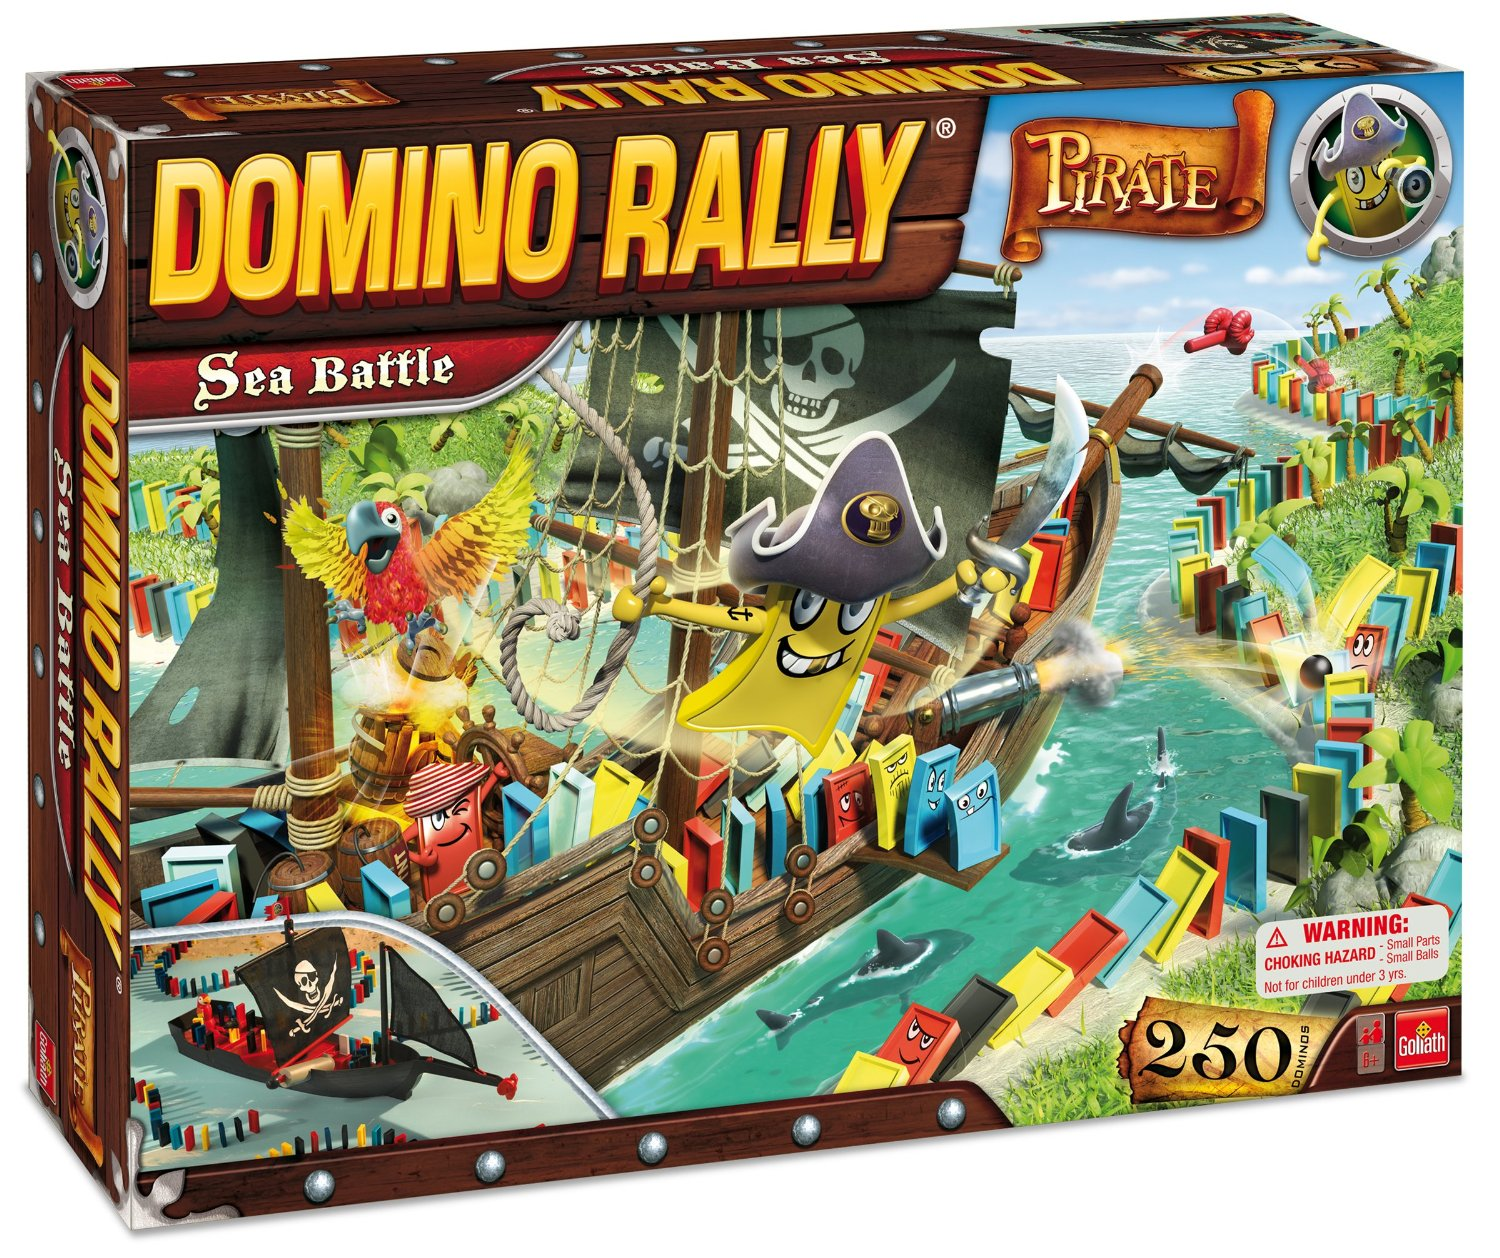 Domino Rally Pirate Sea Battle Set